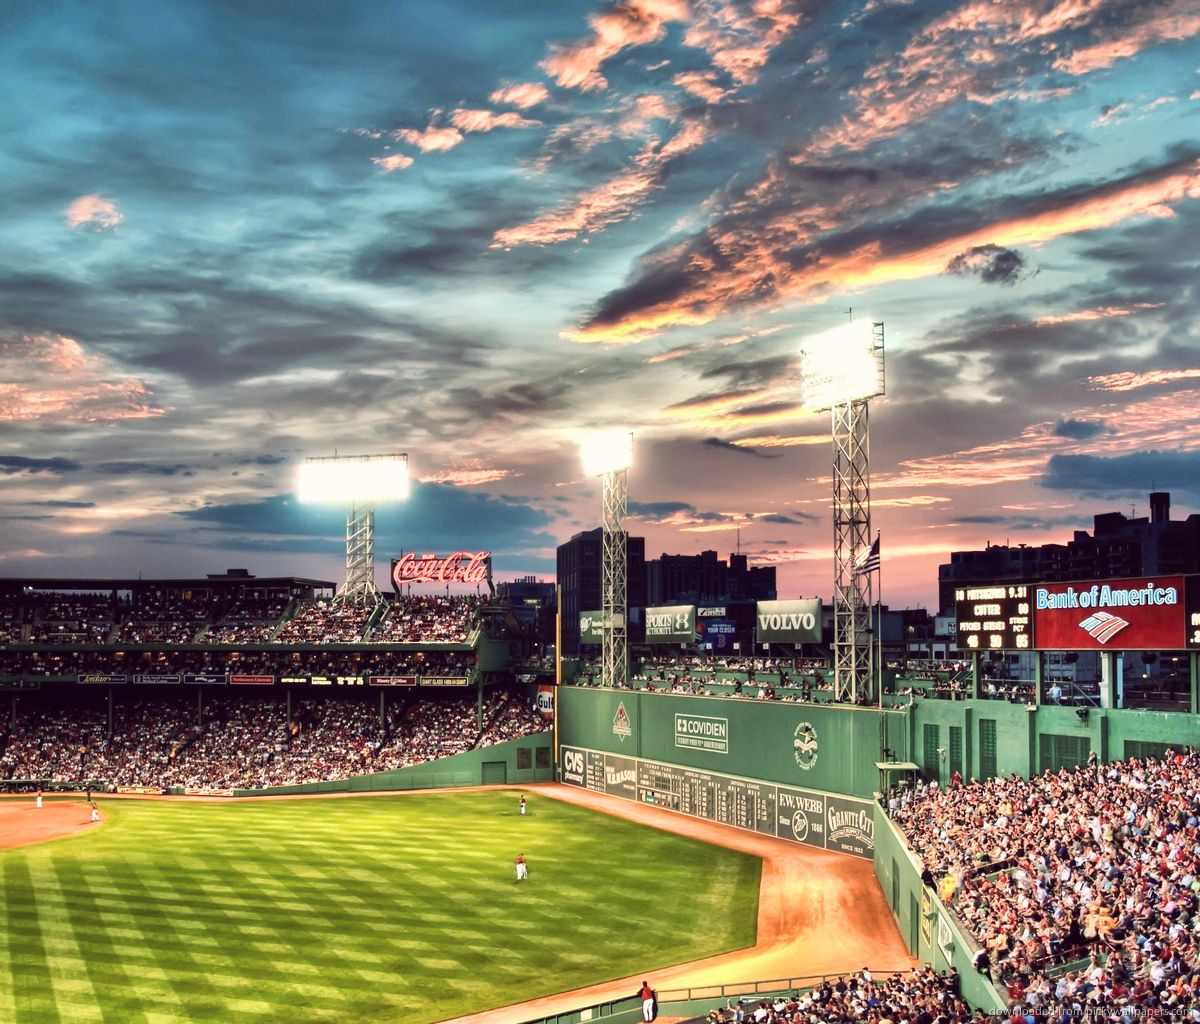 Fenway Park Wallpapers Top Free Fenway Park Backgrounds Wallpaperaccess